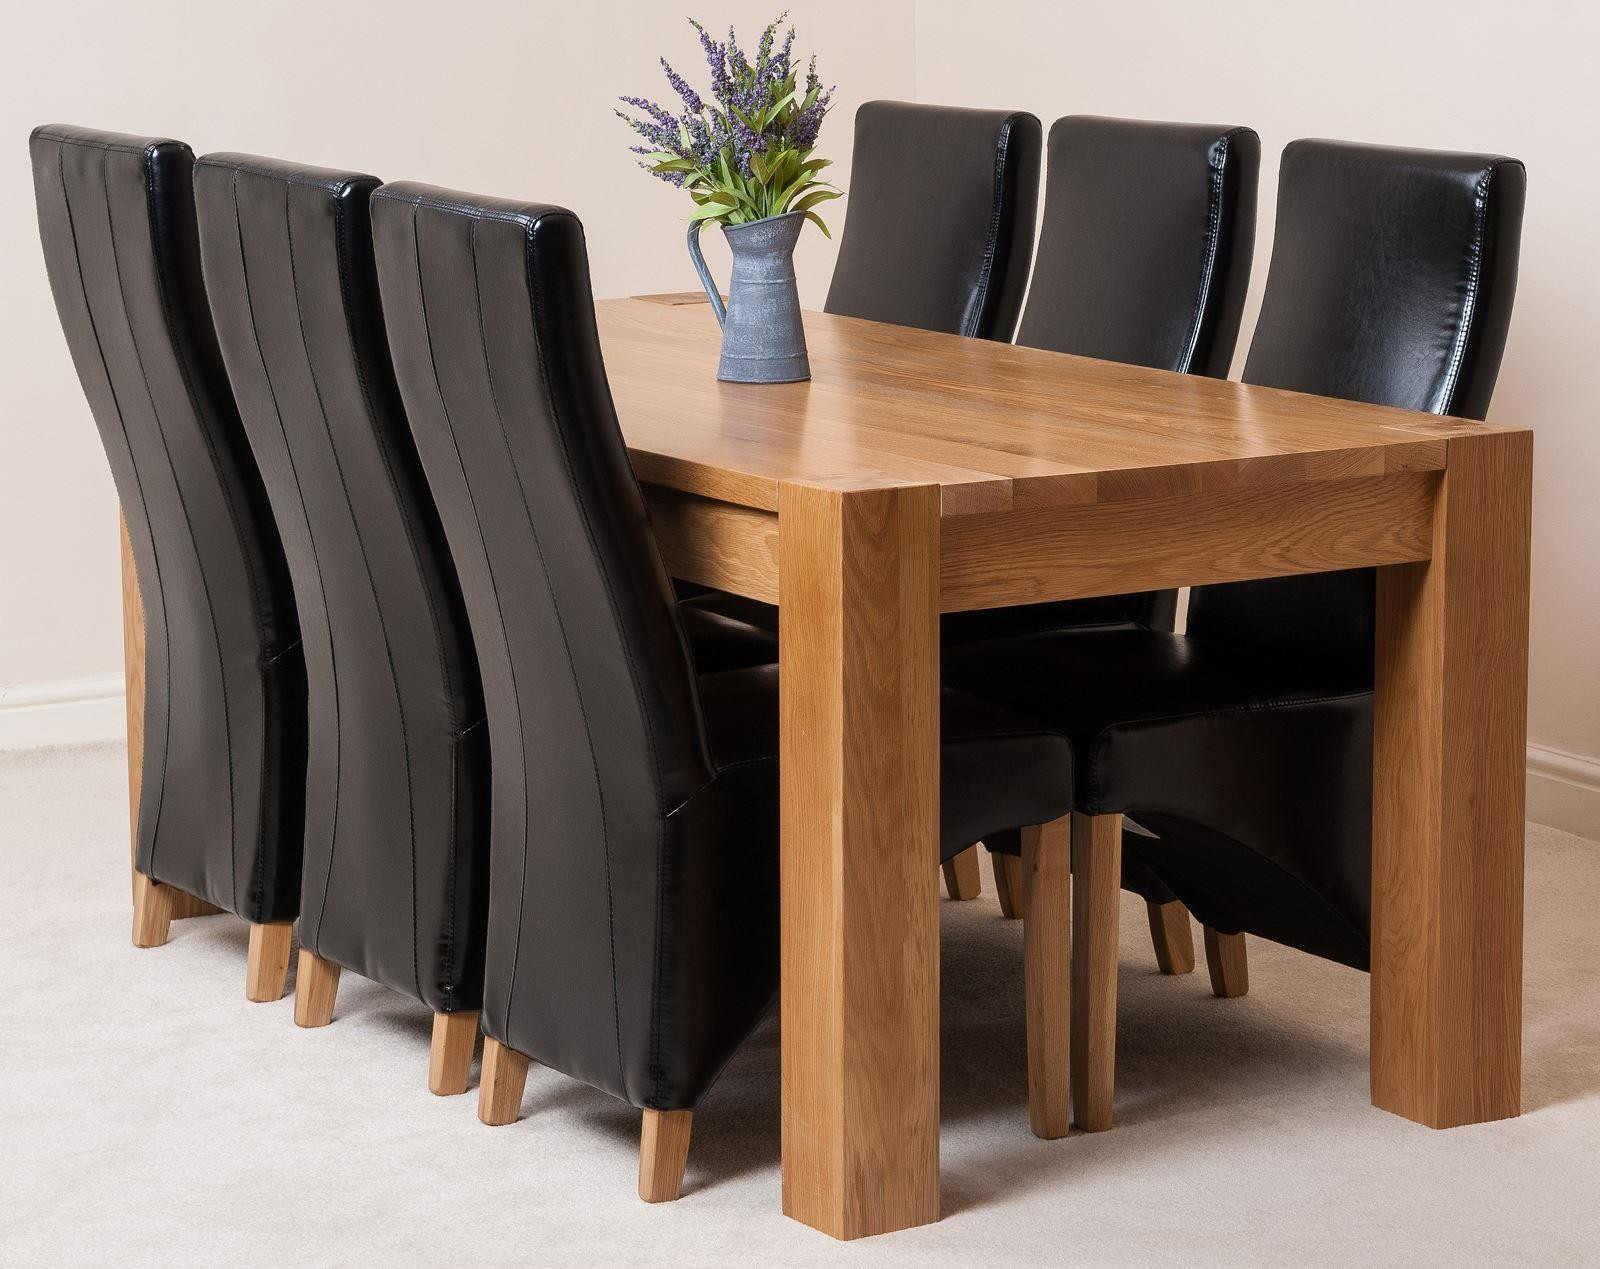 Kuba Oak Dining Table with 9 Black Lola Dining Chairs